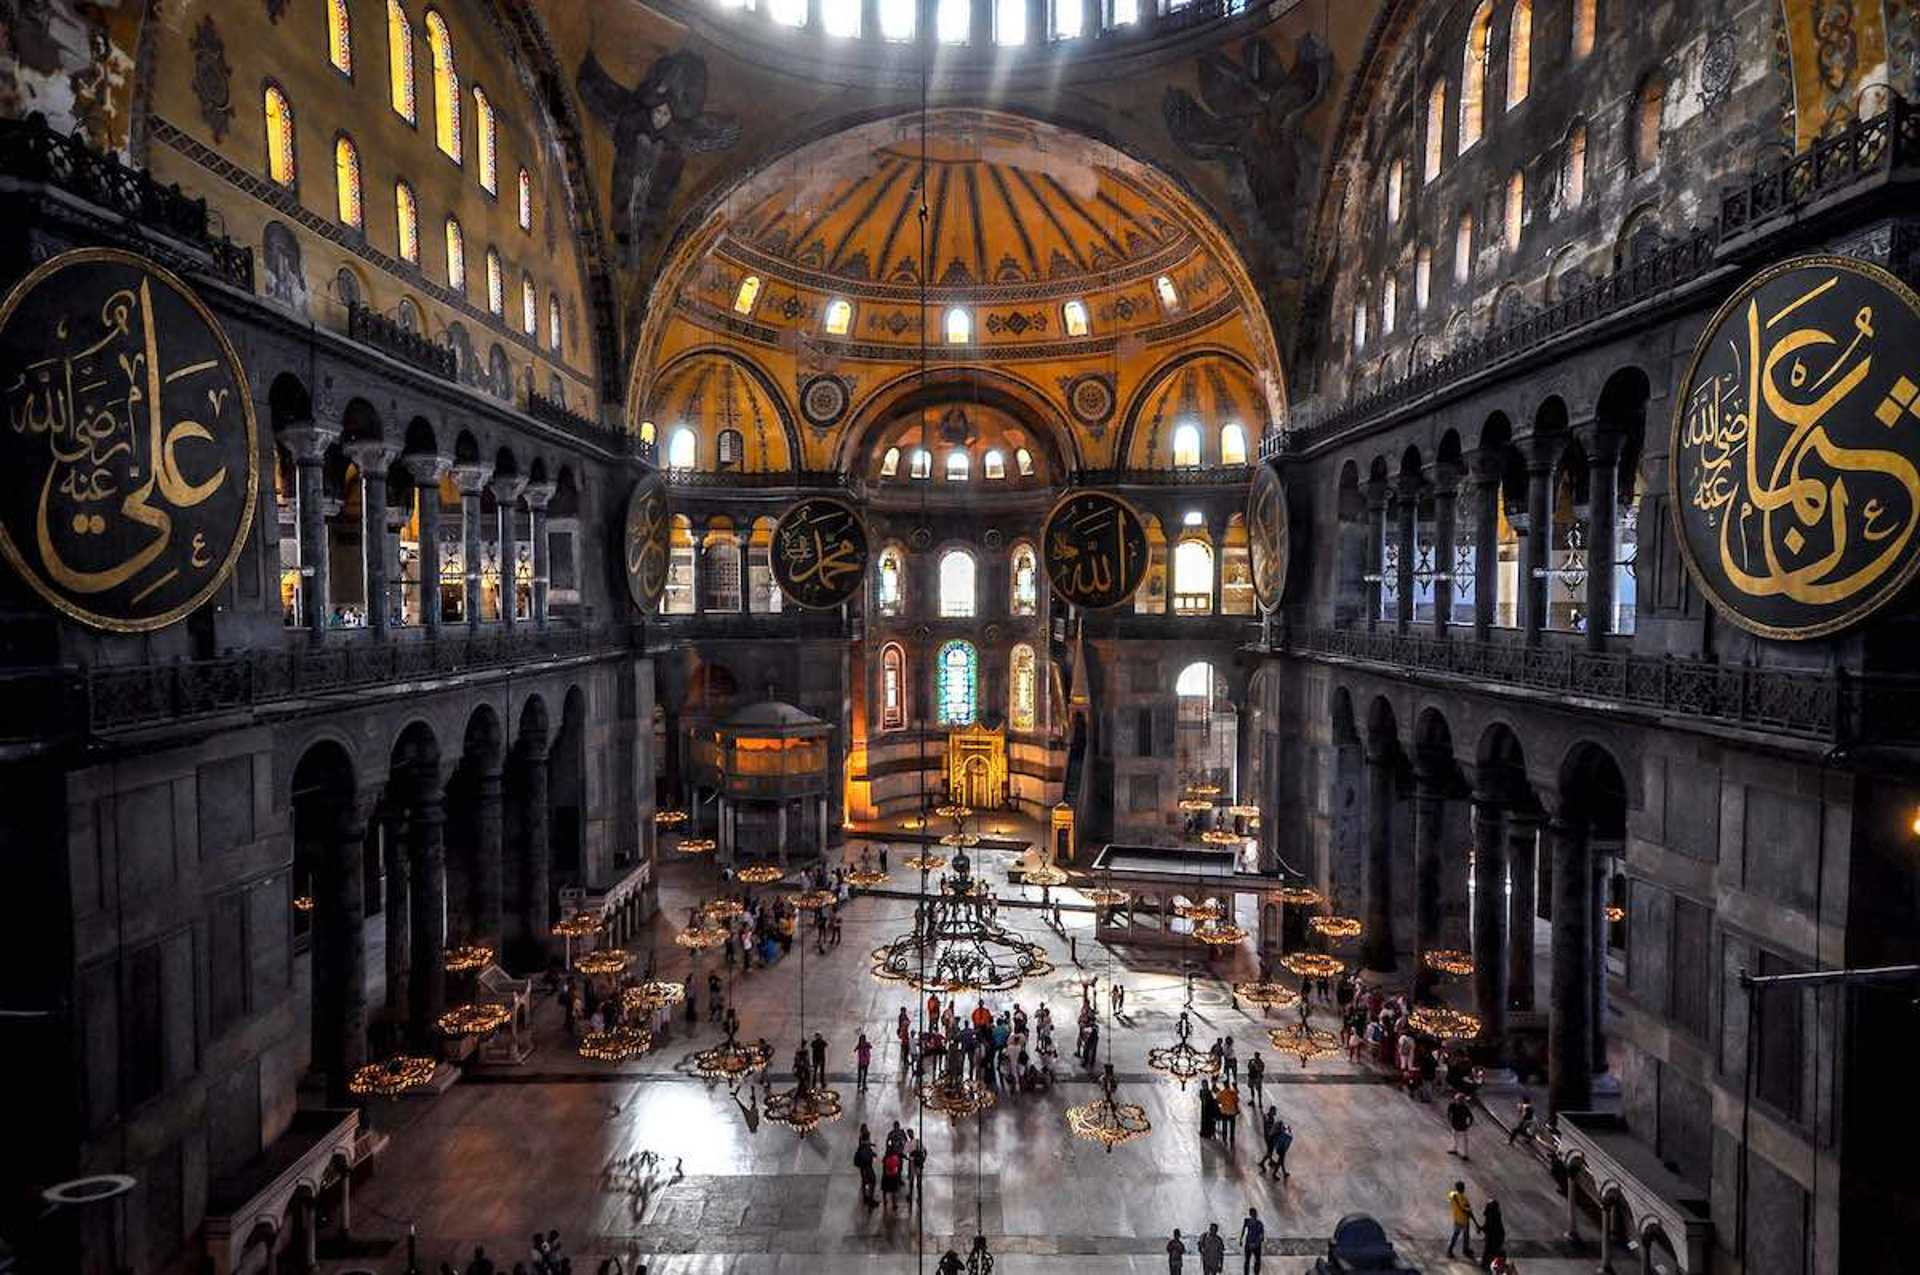 The interior of the Hagia Sophia is an architectural and historical wonder!